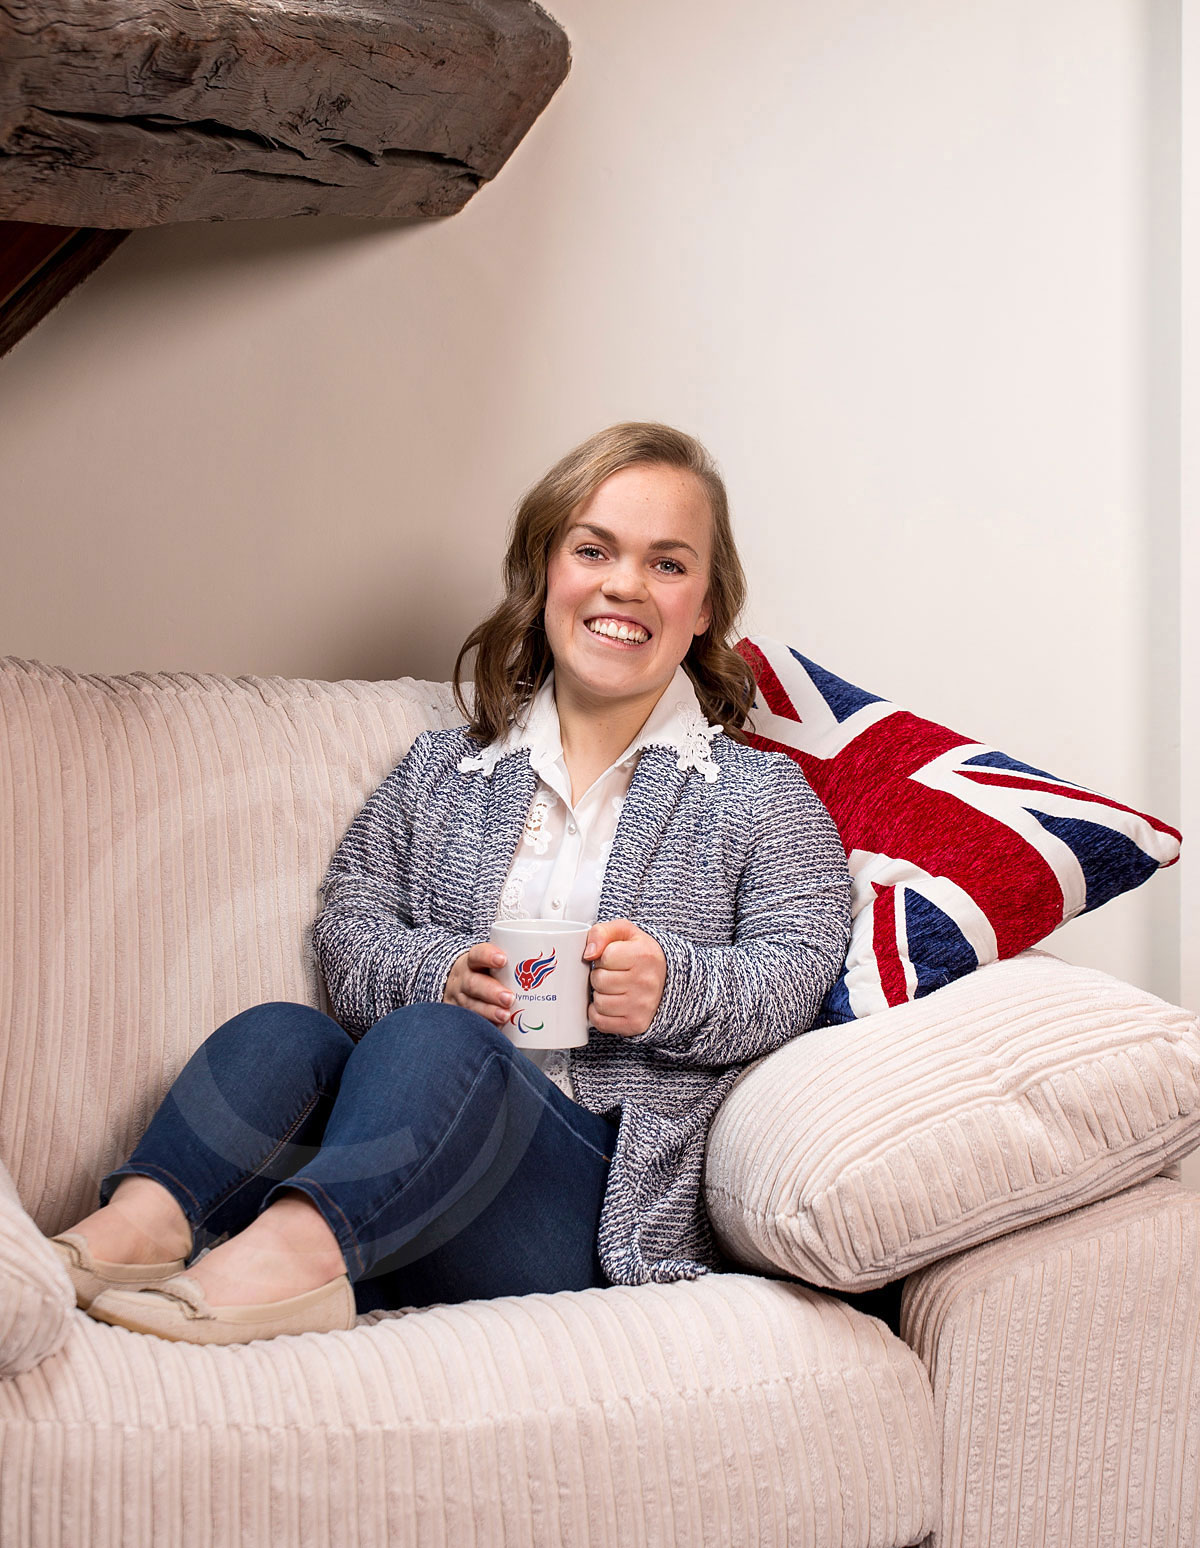 EllieSimmonds-paralympian-swimmer-olympics-editorial-portrait-photography-yorkshirejpg